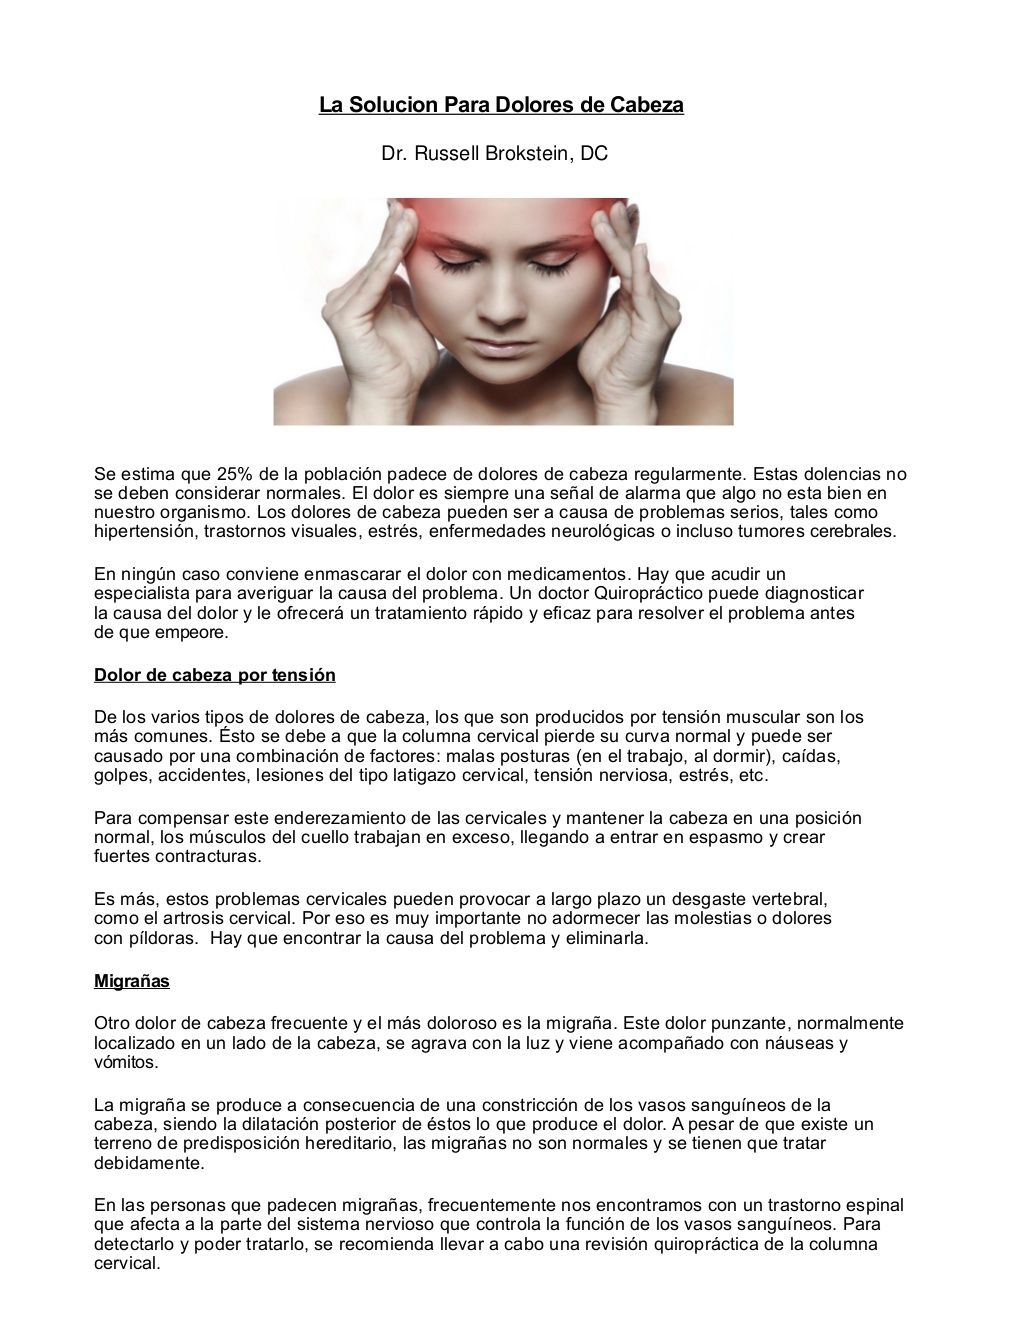 Quiropractico Freehold - La Solucion Para Dolores de Cabeza by Freehold Chiropractor - Dr. Russell Brokstein via slideshare